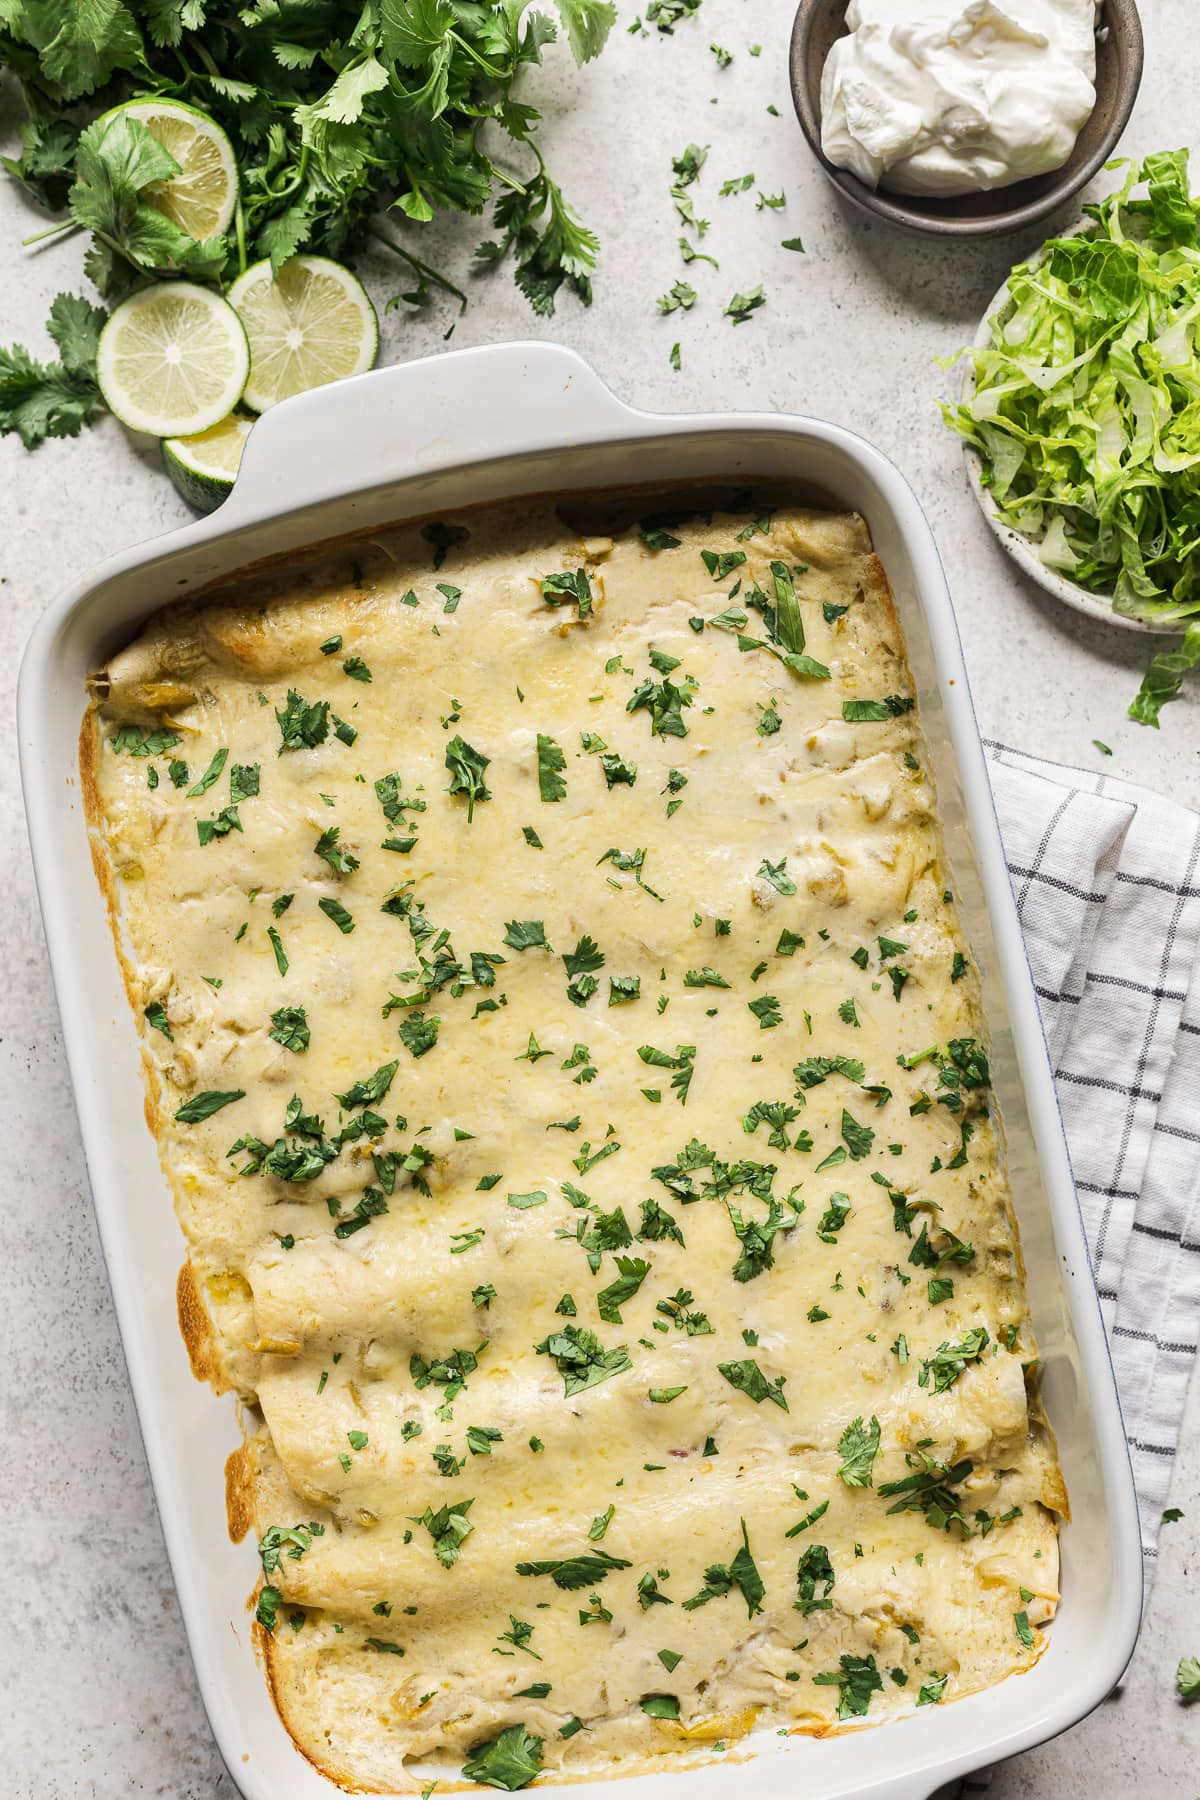 A baking dish full of white chicken enchiladas ready to be served and eaten.